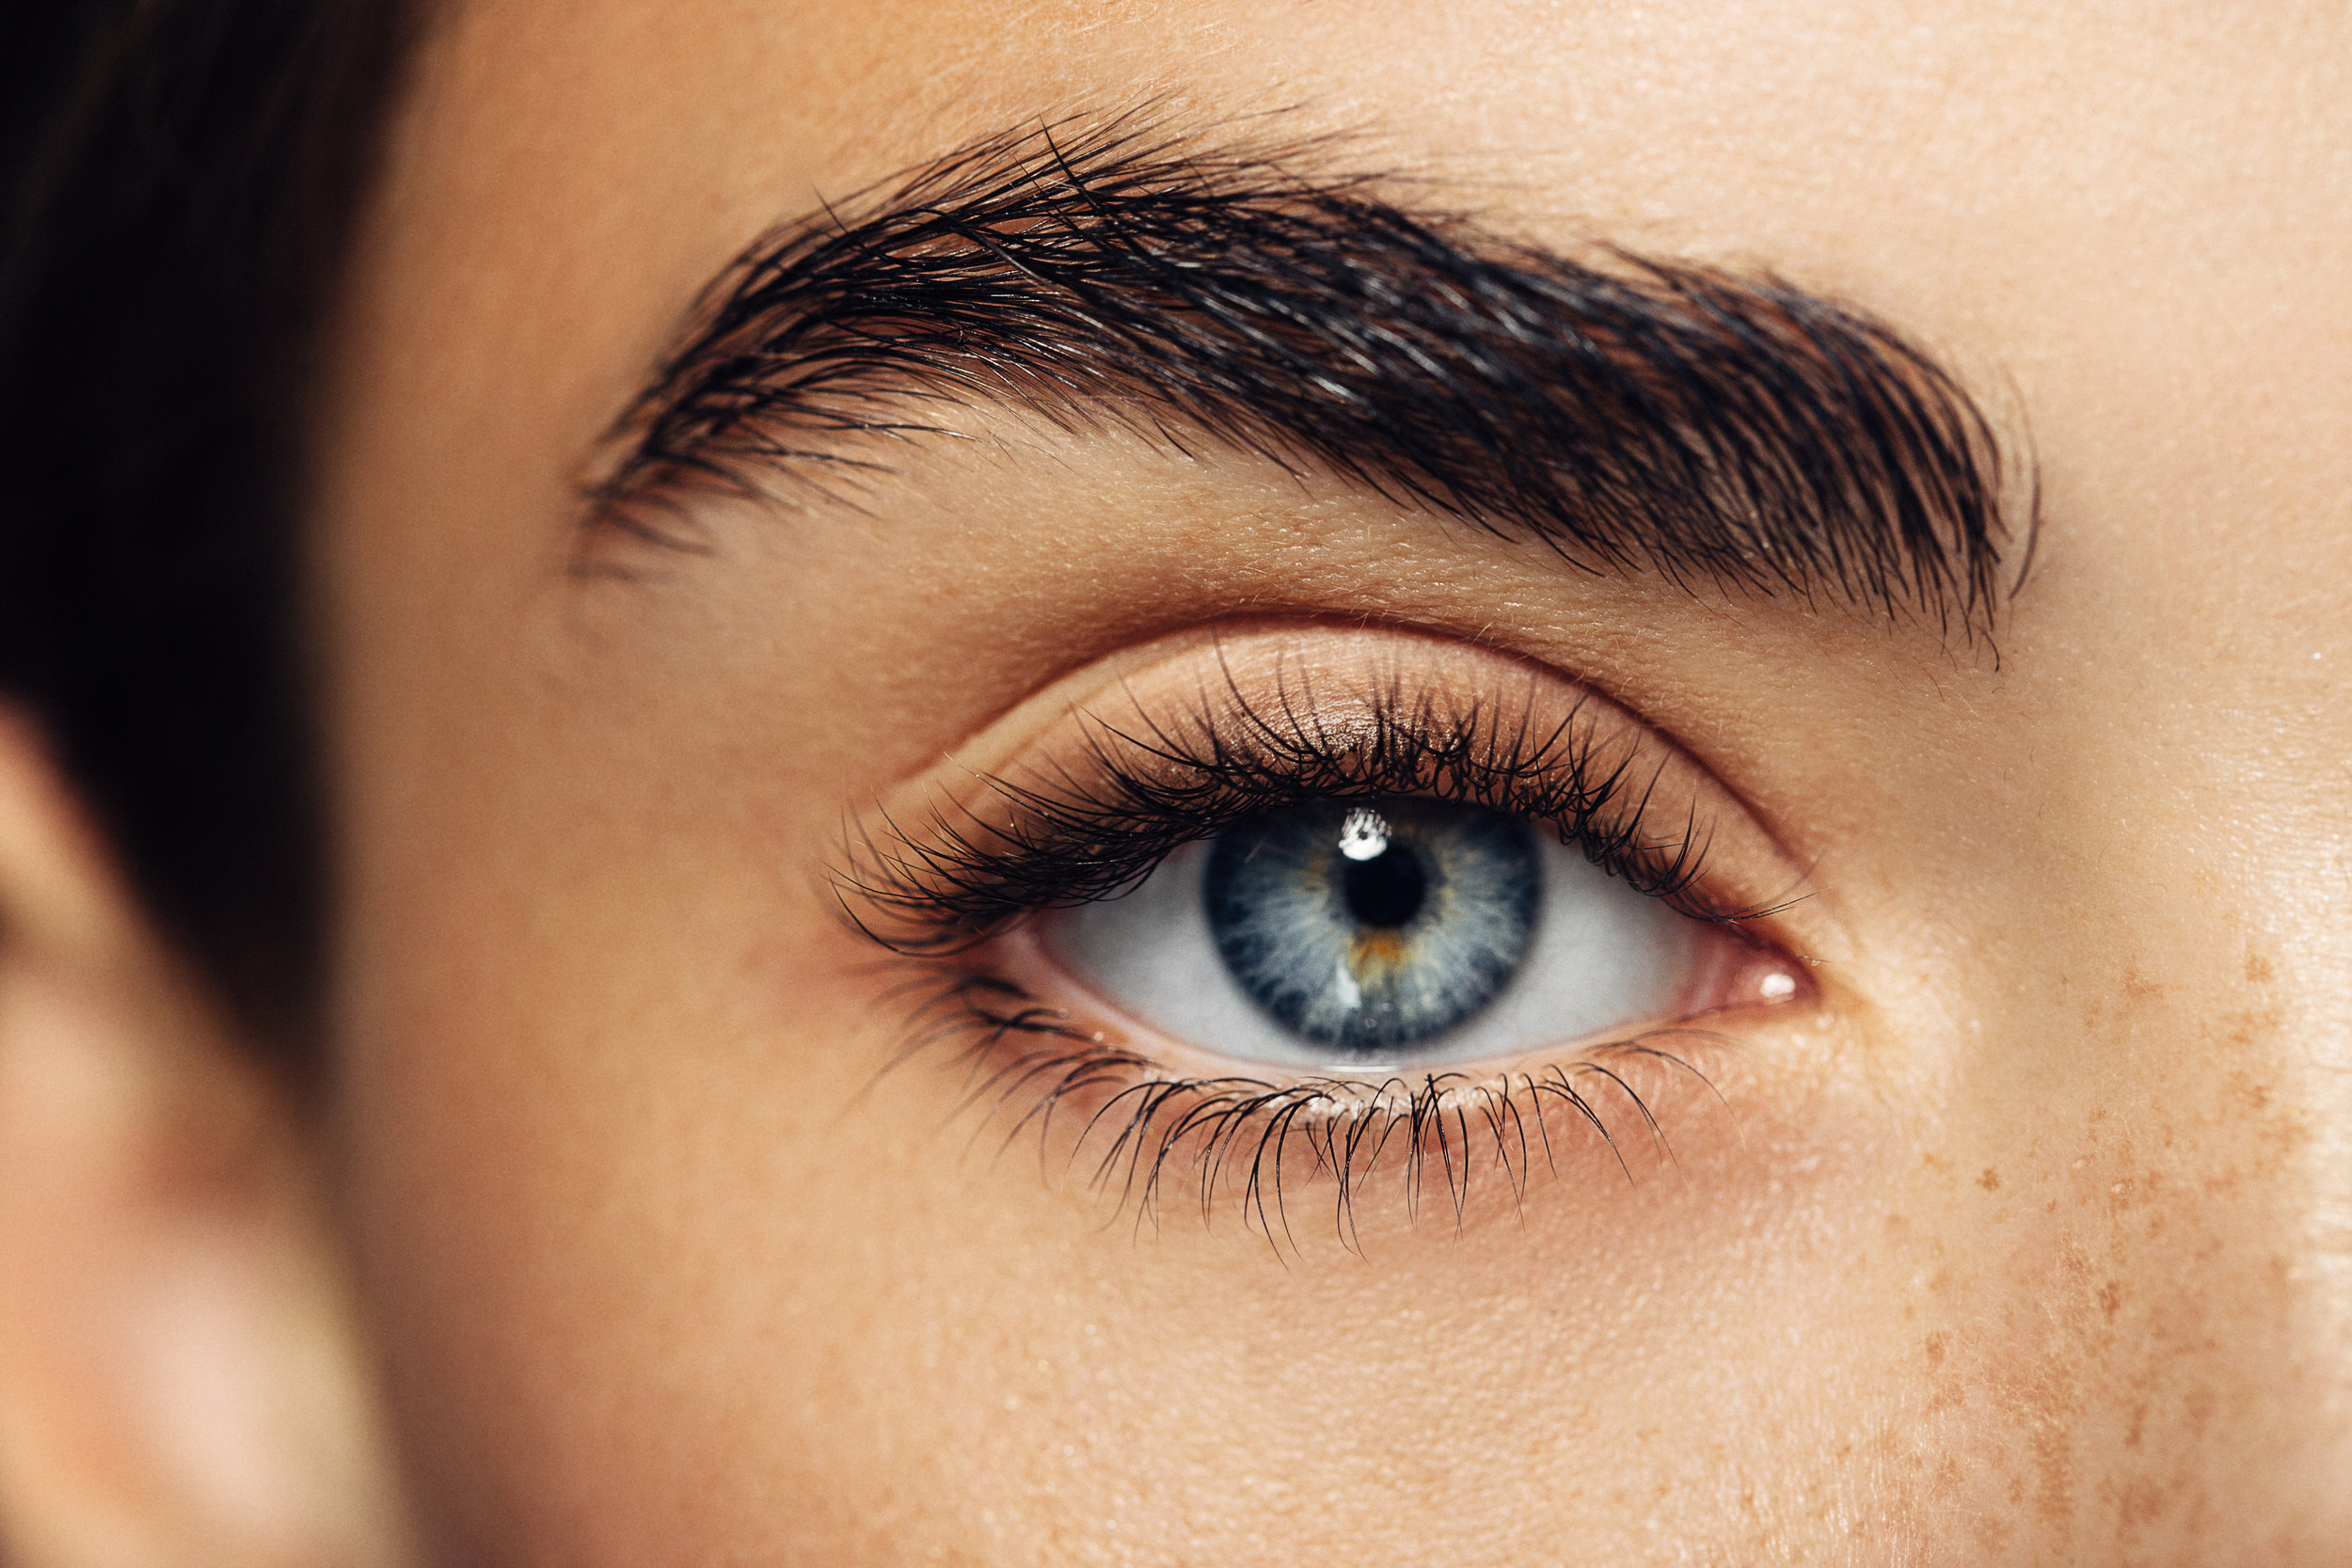 Eyeliner   * Natural upper eyeliner (top)  $1,100   * Natural Lower lash line  $450    Eyeliner Add on   * Lash line soft smokey / misting effect  $100.00    Complimentary lash lift and tint with this procedure. It requires a longer appointment . Please inform reception if you would like to add this to your service.